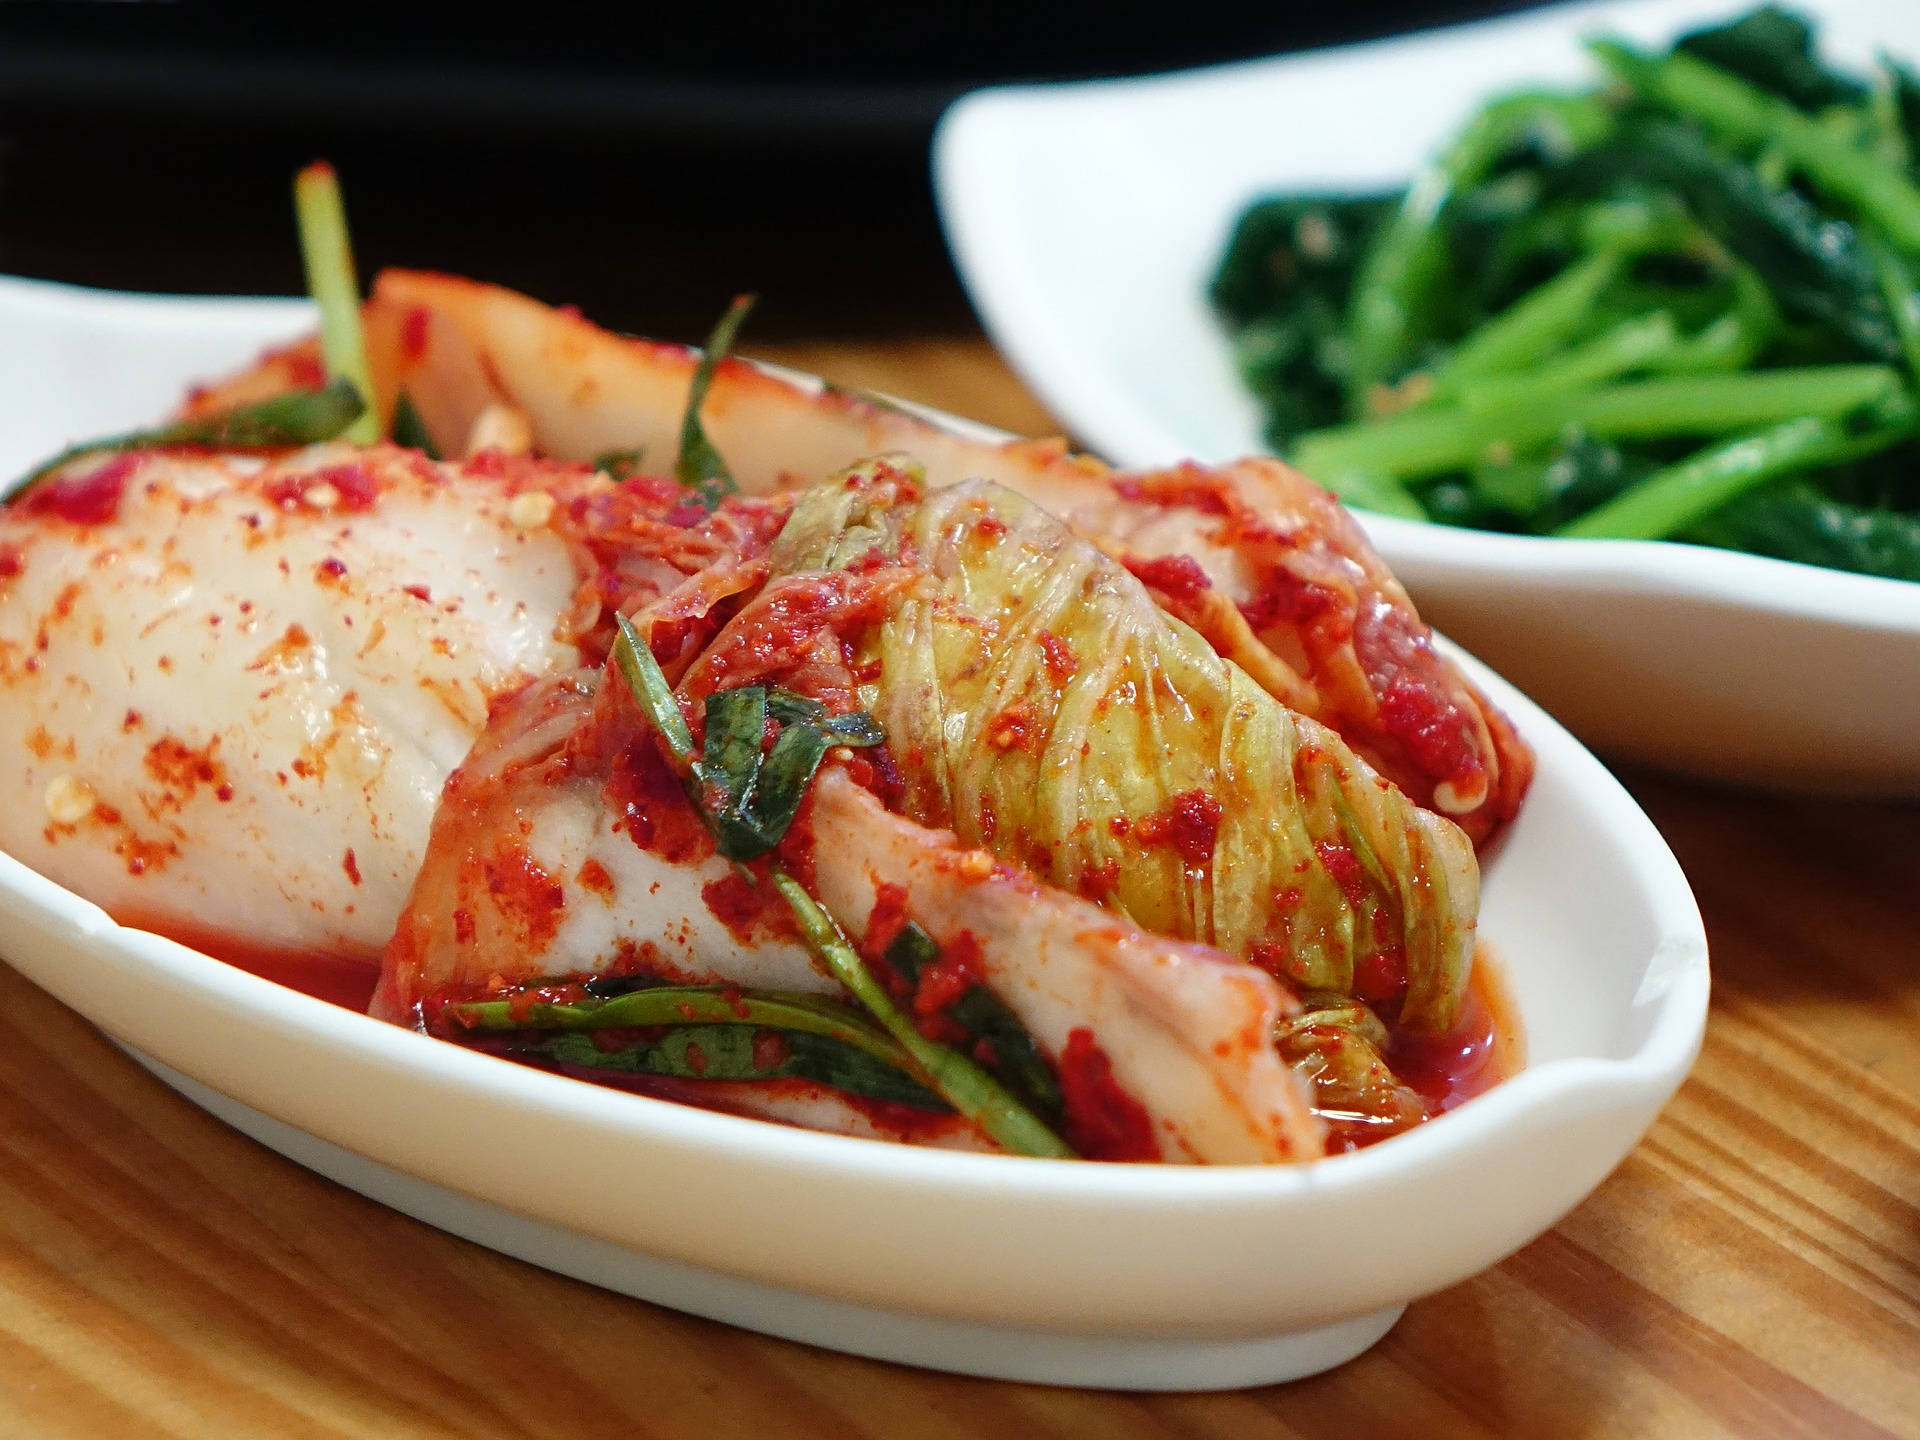 Kimchi for digestion